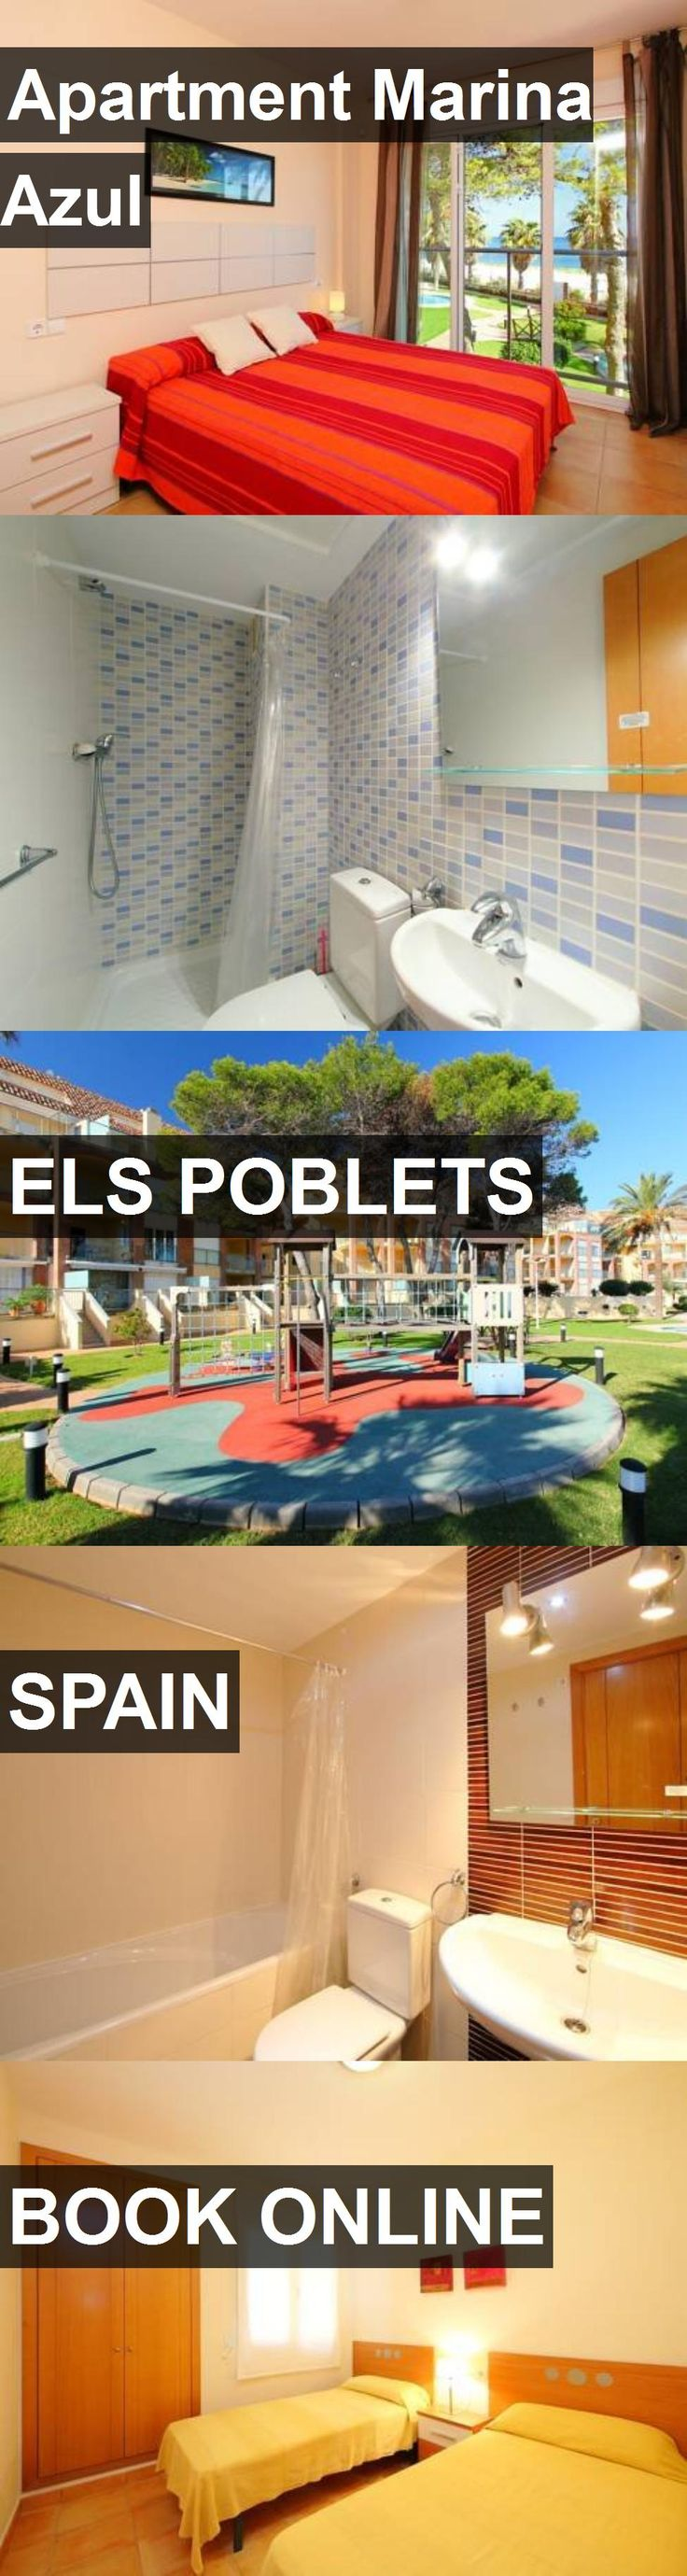 Apartment Marina Azul in Els Poblets, Spain. For more information, photos, reviews and best prices please follow the link. #Spain #ElsPoblets #travel #vacation #apartment